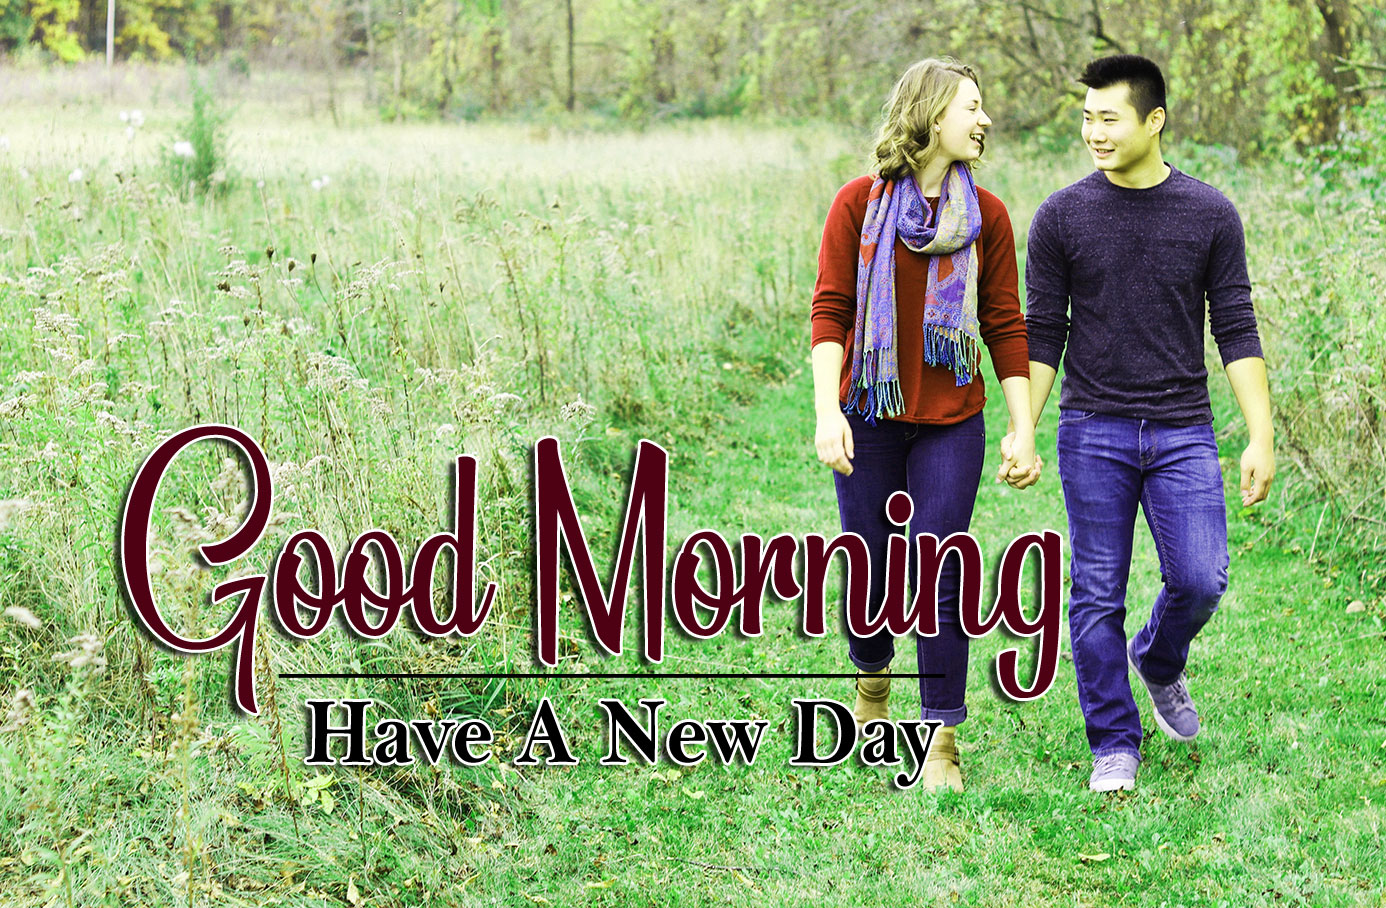 beautiful couple good morning images photo free download